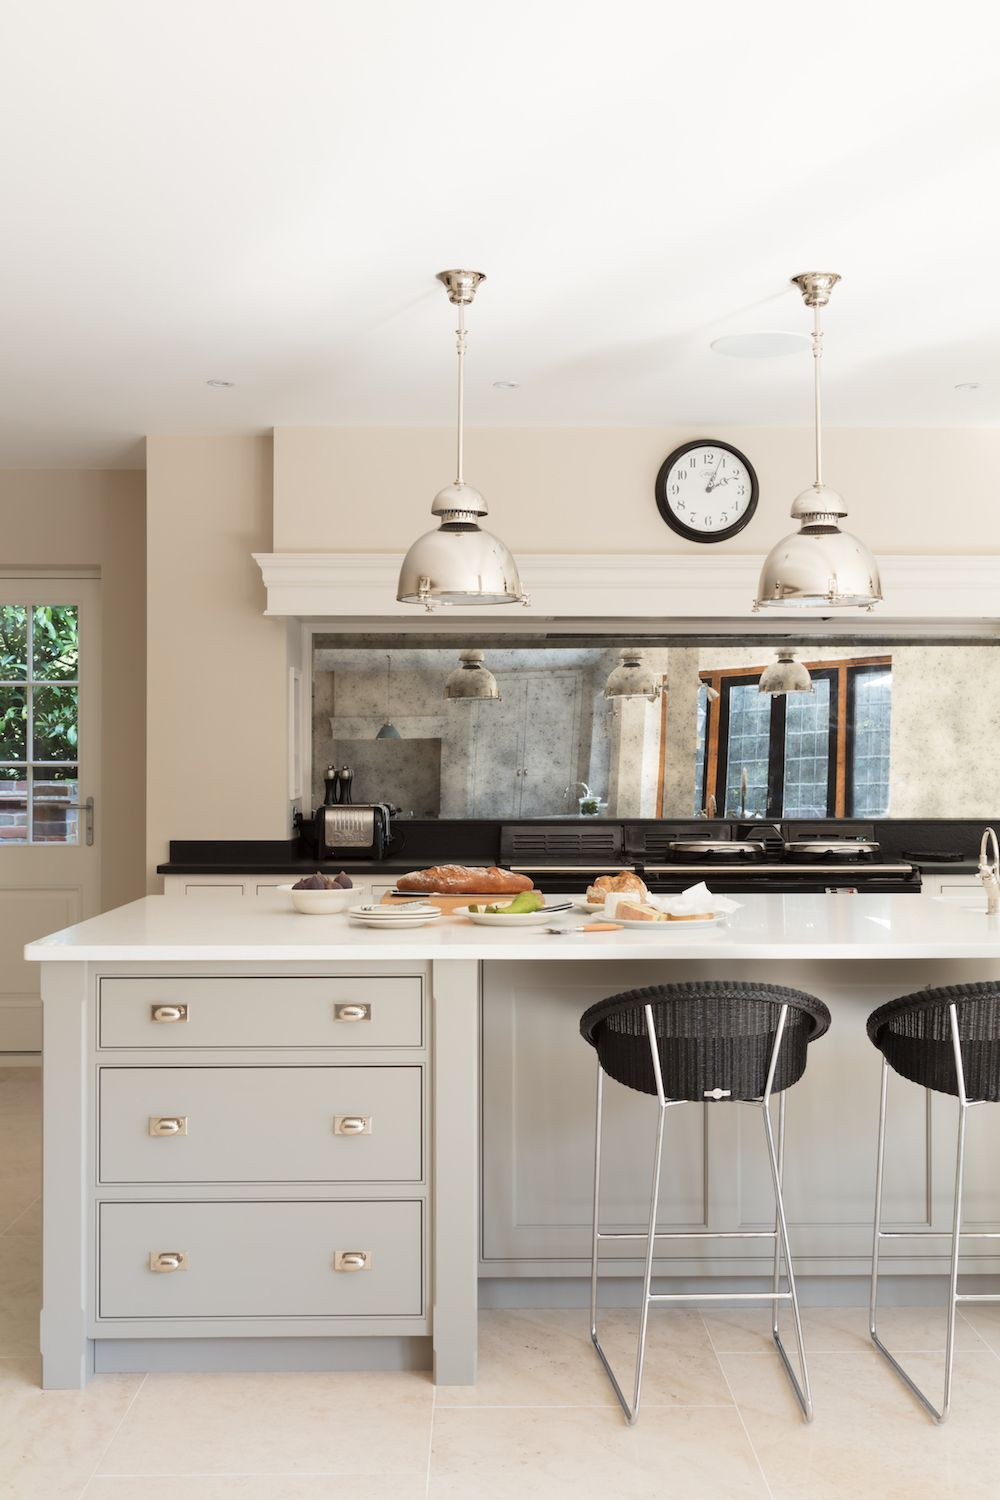 Large kitchen island in front of the